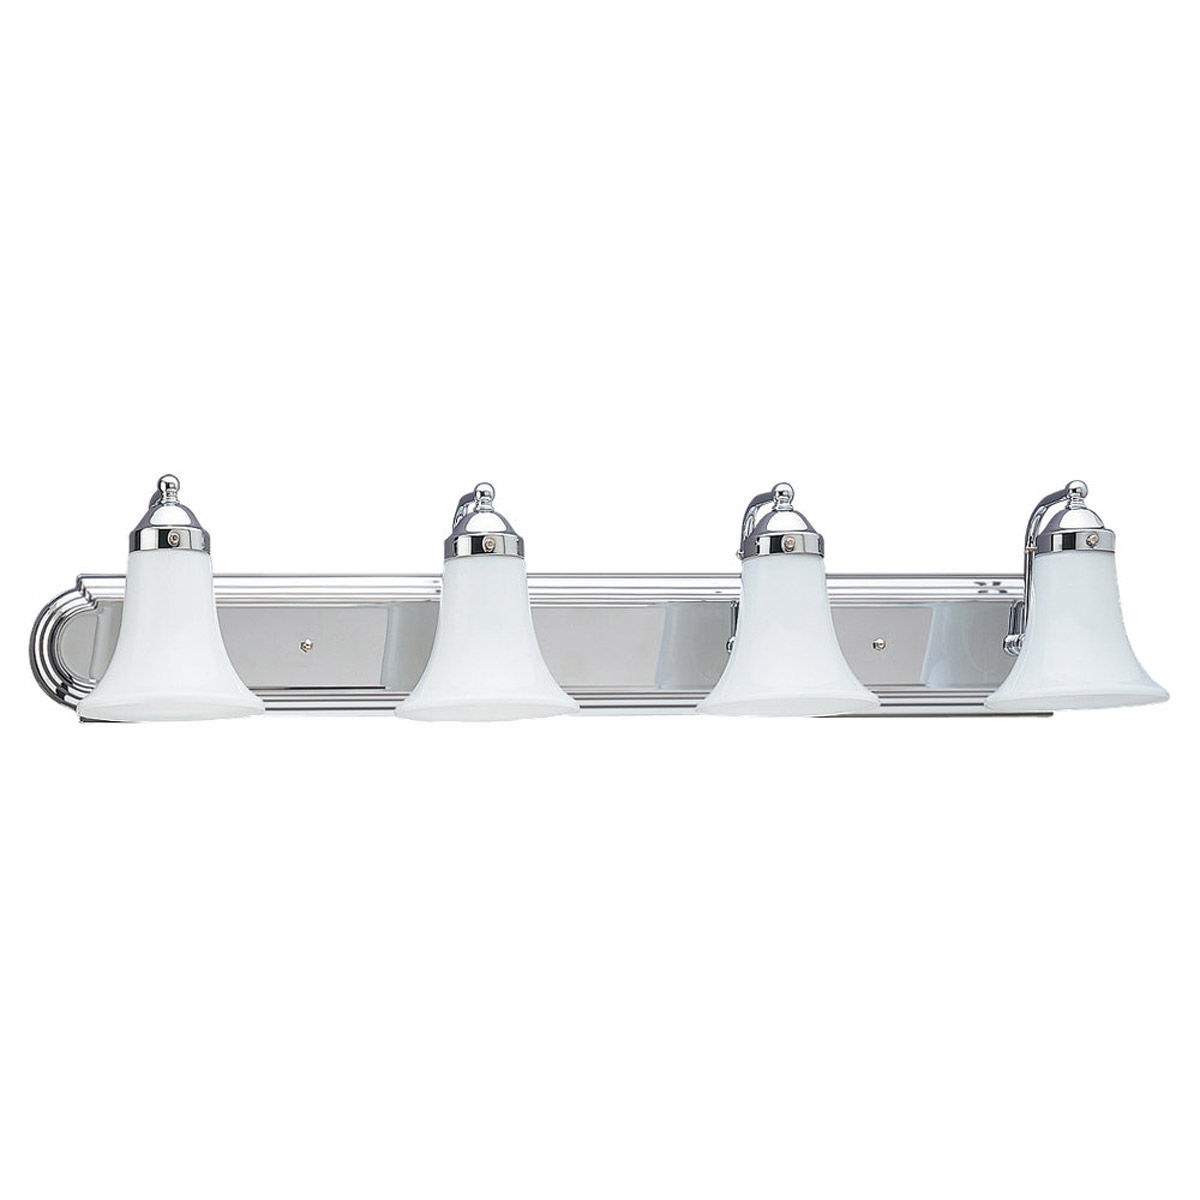 Sea Gull Lighting Astoria 4 Light Bath Vanity in Chrome 4860-05 photo